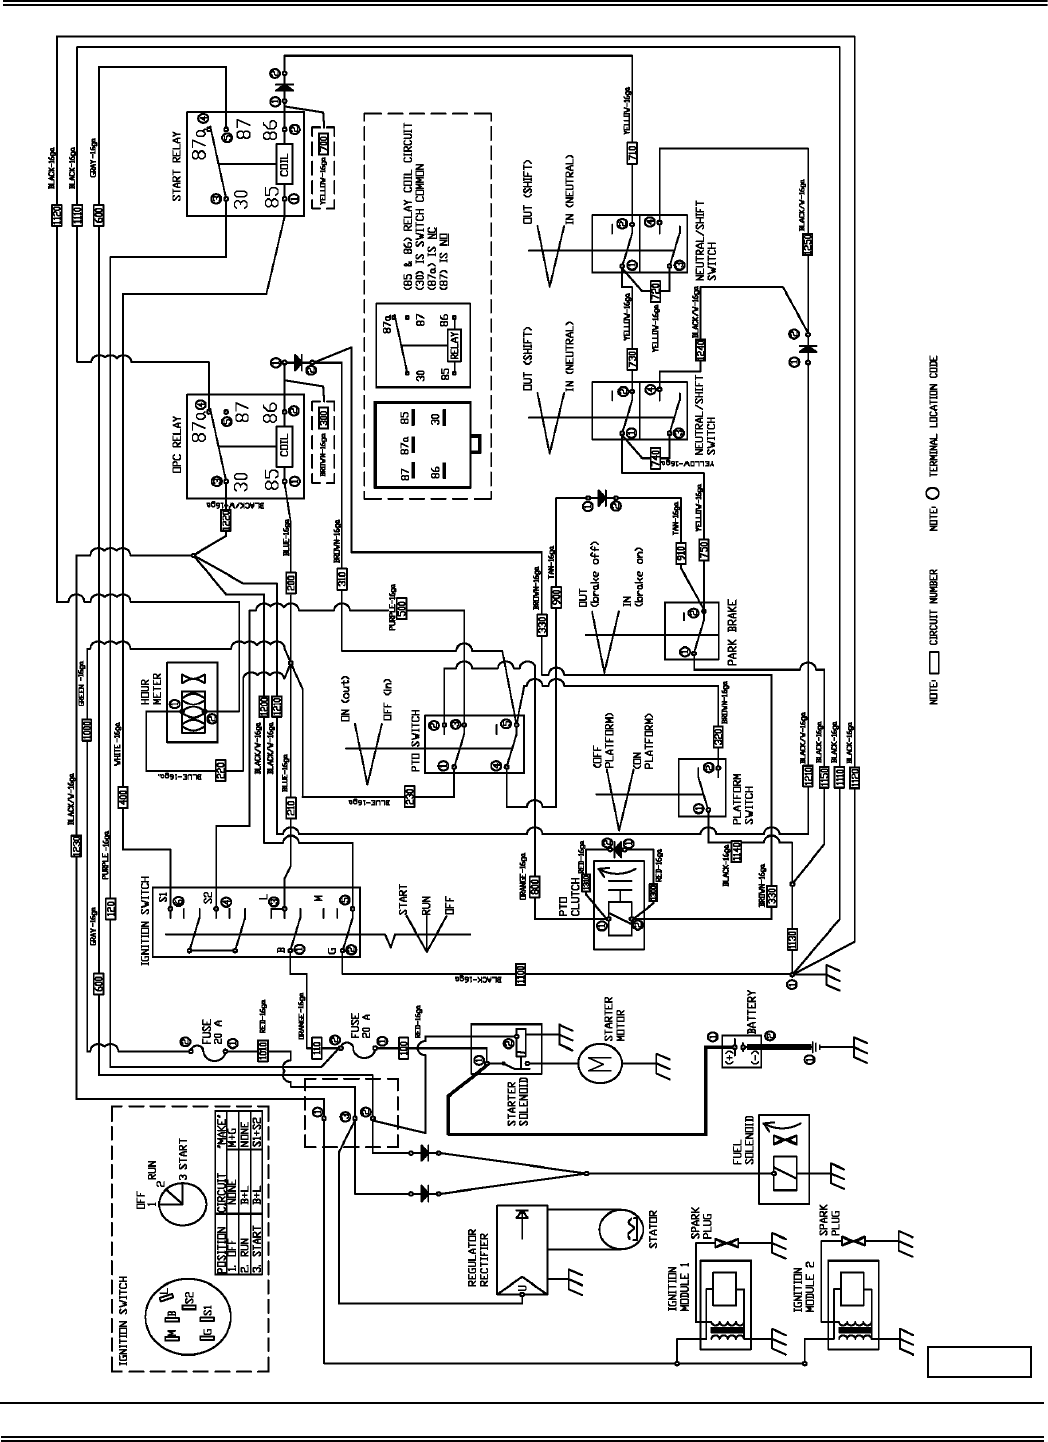 fce7053f 5877 46d6 bc3e 6fac5bbe8b21 bg40?resize=665%2C915 mitsubishi triton trailer wiring diagram wiring diagram mitsubishi triton trailer wiring harness at webbmarketing.co